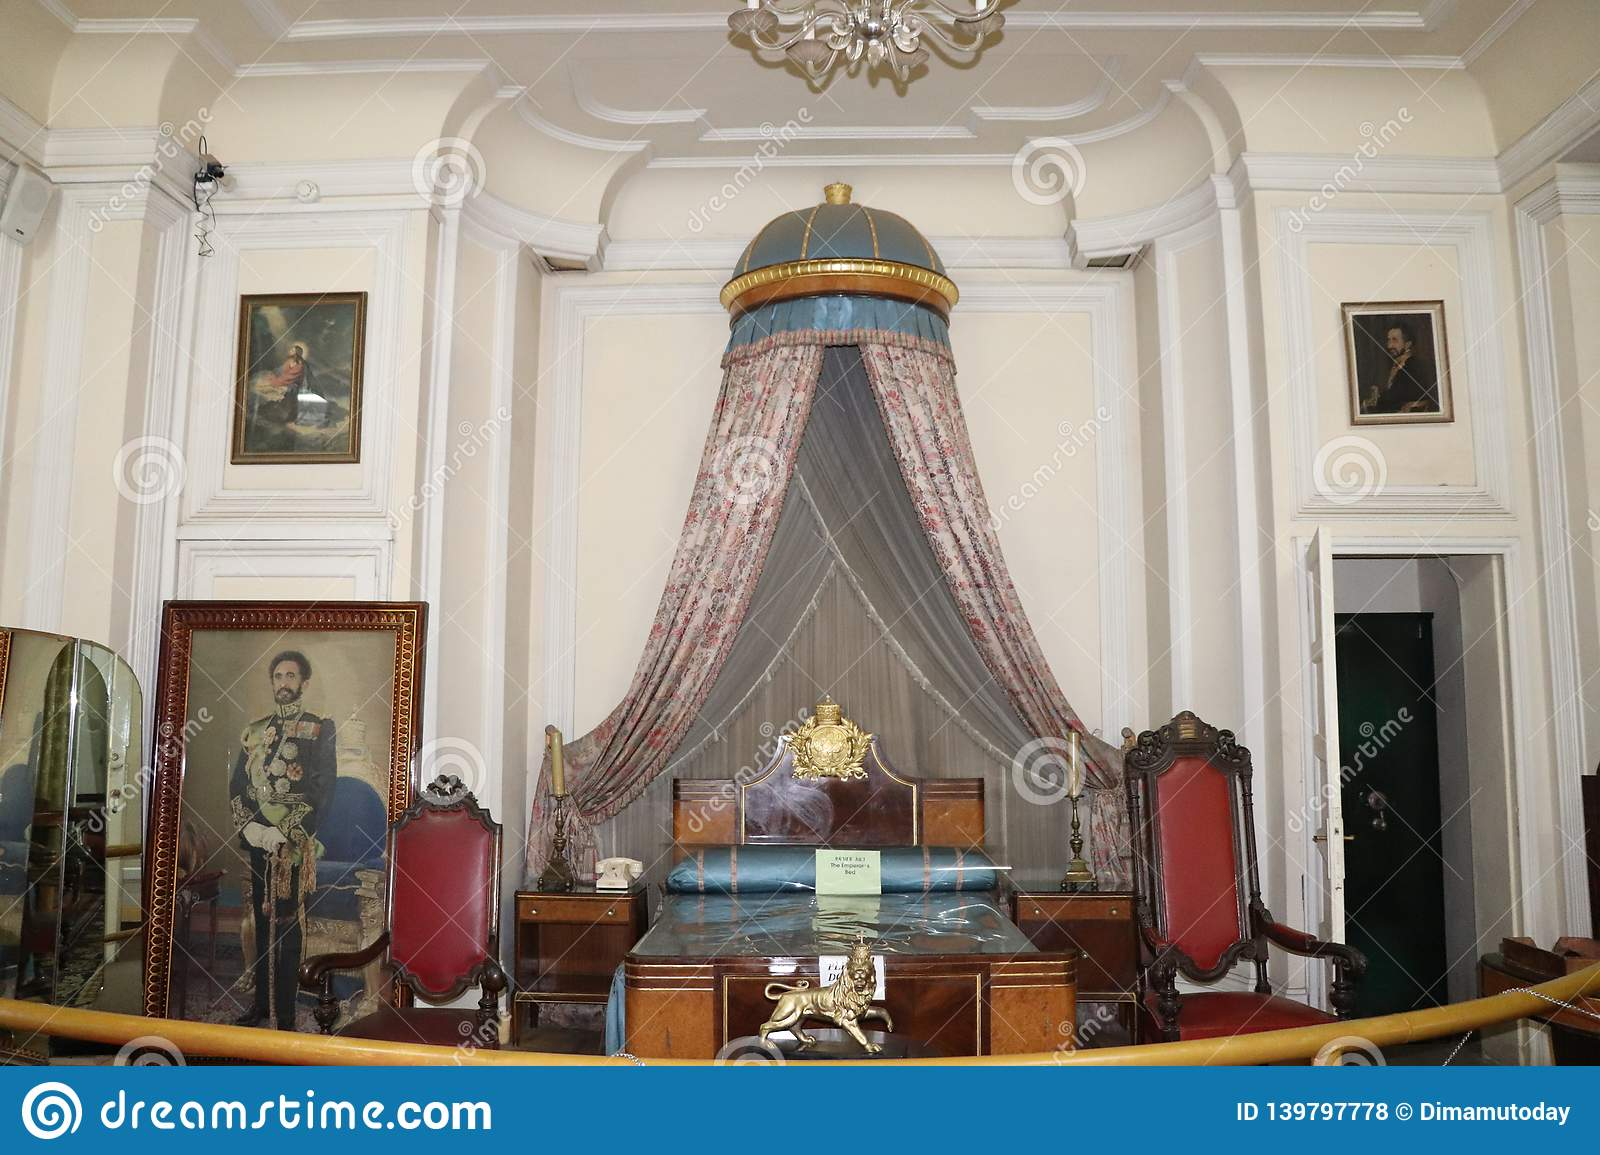 Living Quarters Of Late Emperor Haile Selassie And His Wife Menen